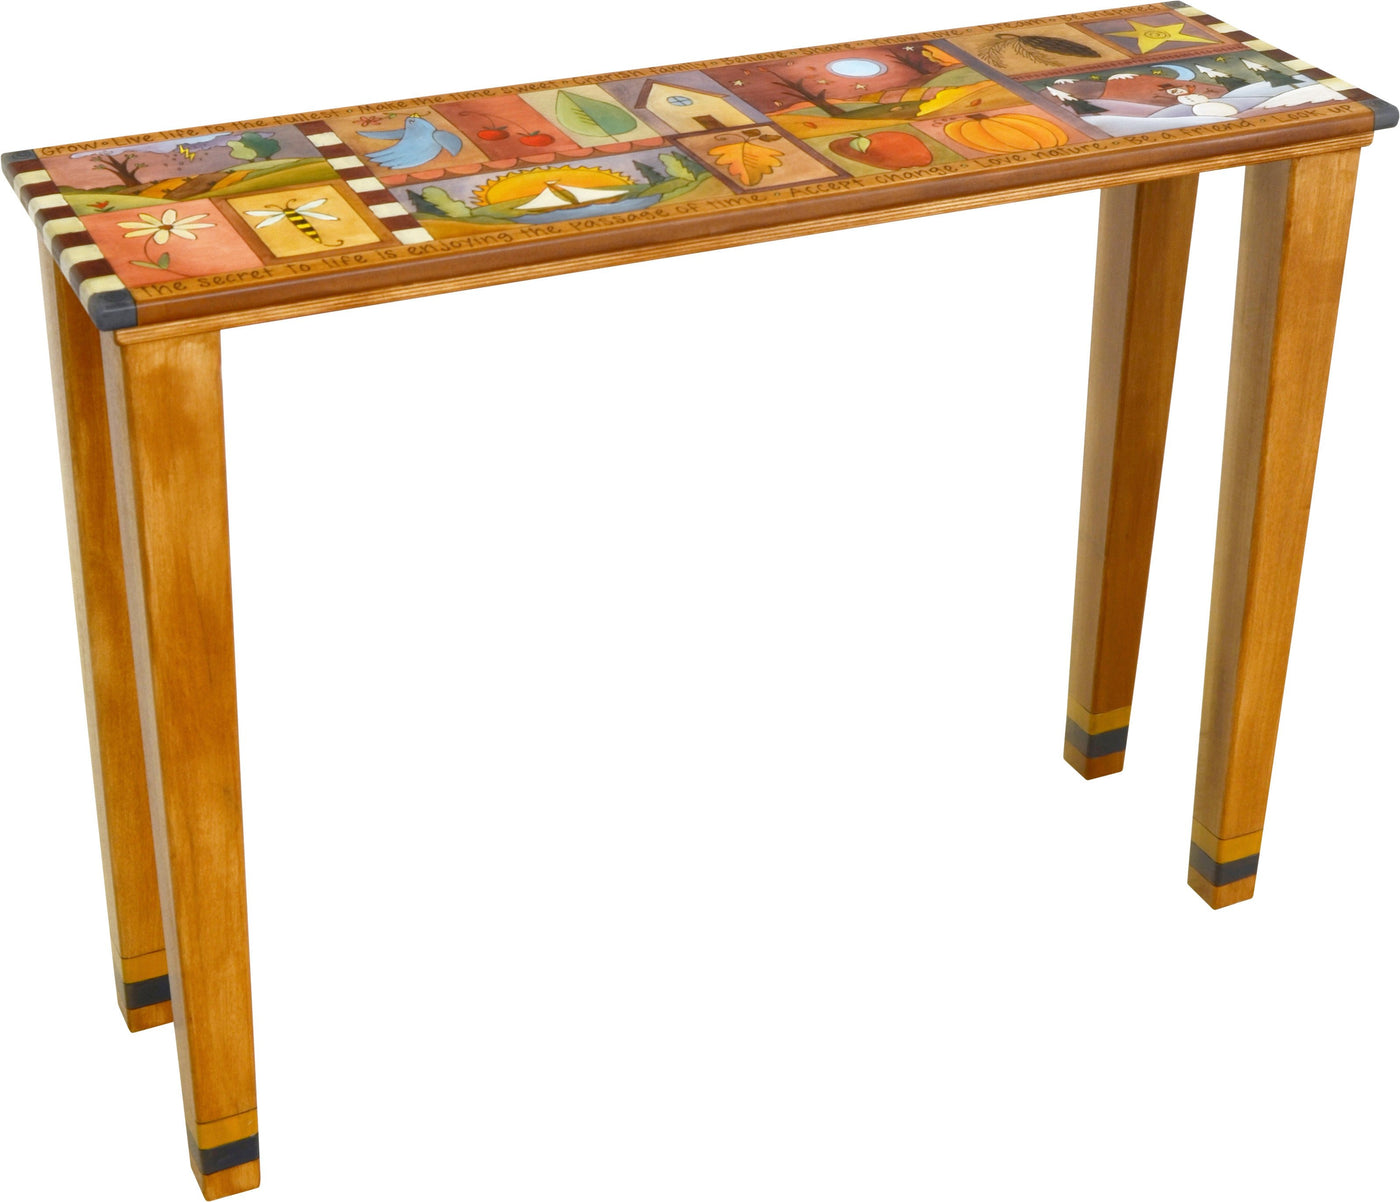 Attirant Sticks Handmade Console Table With Colorful Life Icons ...